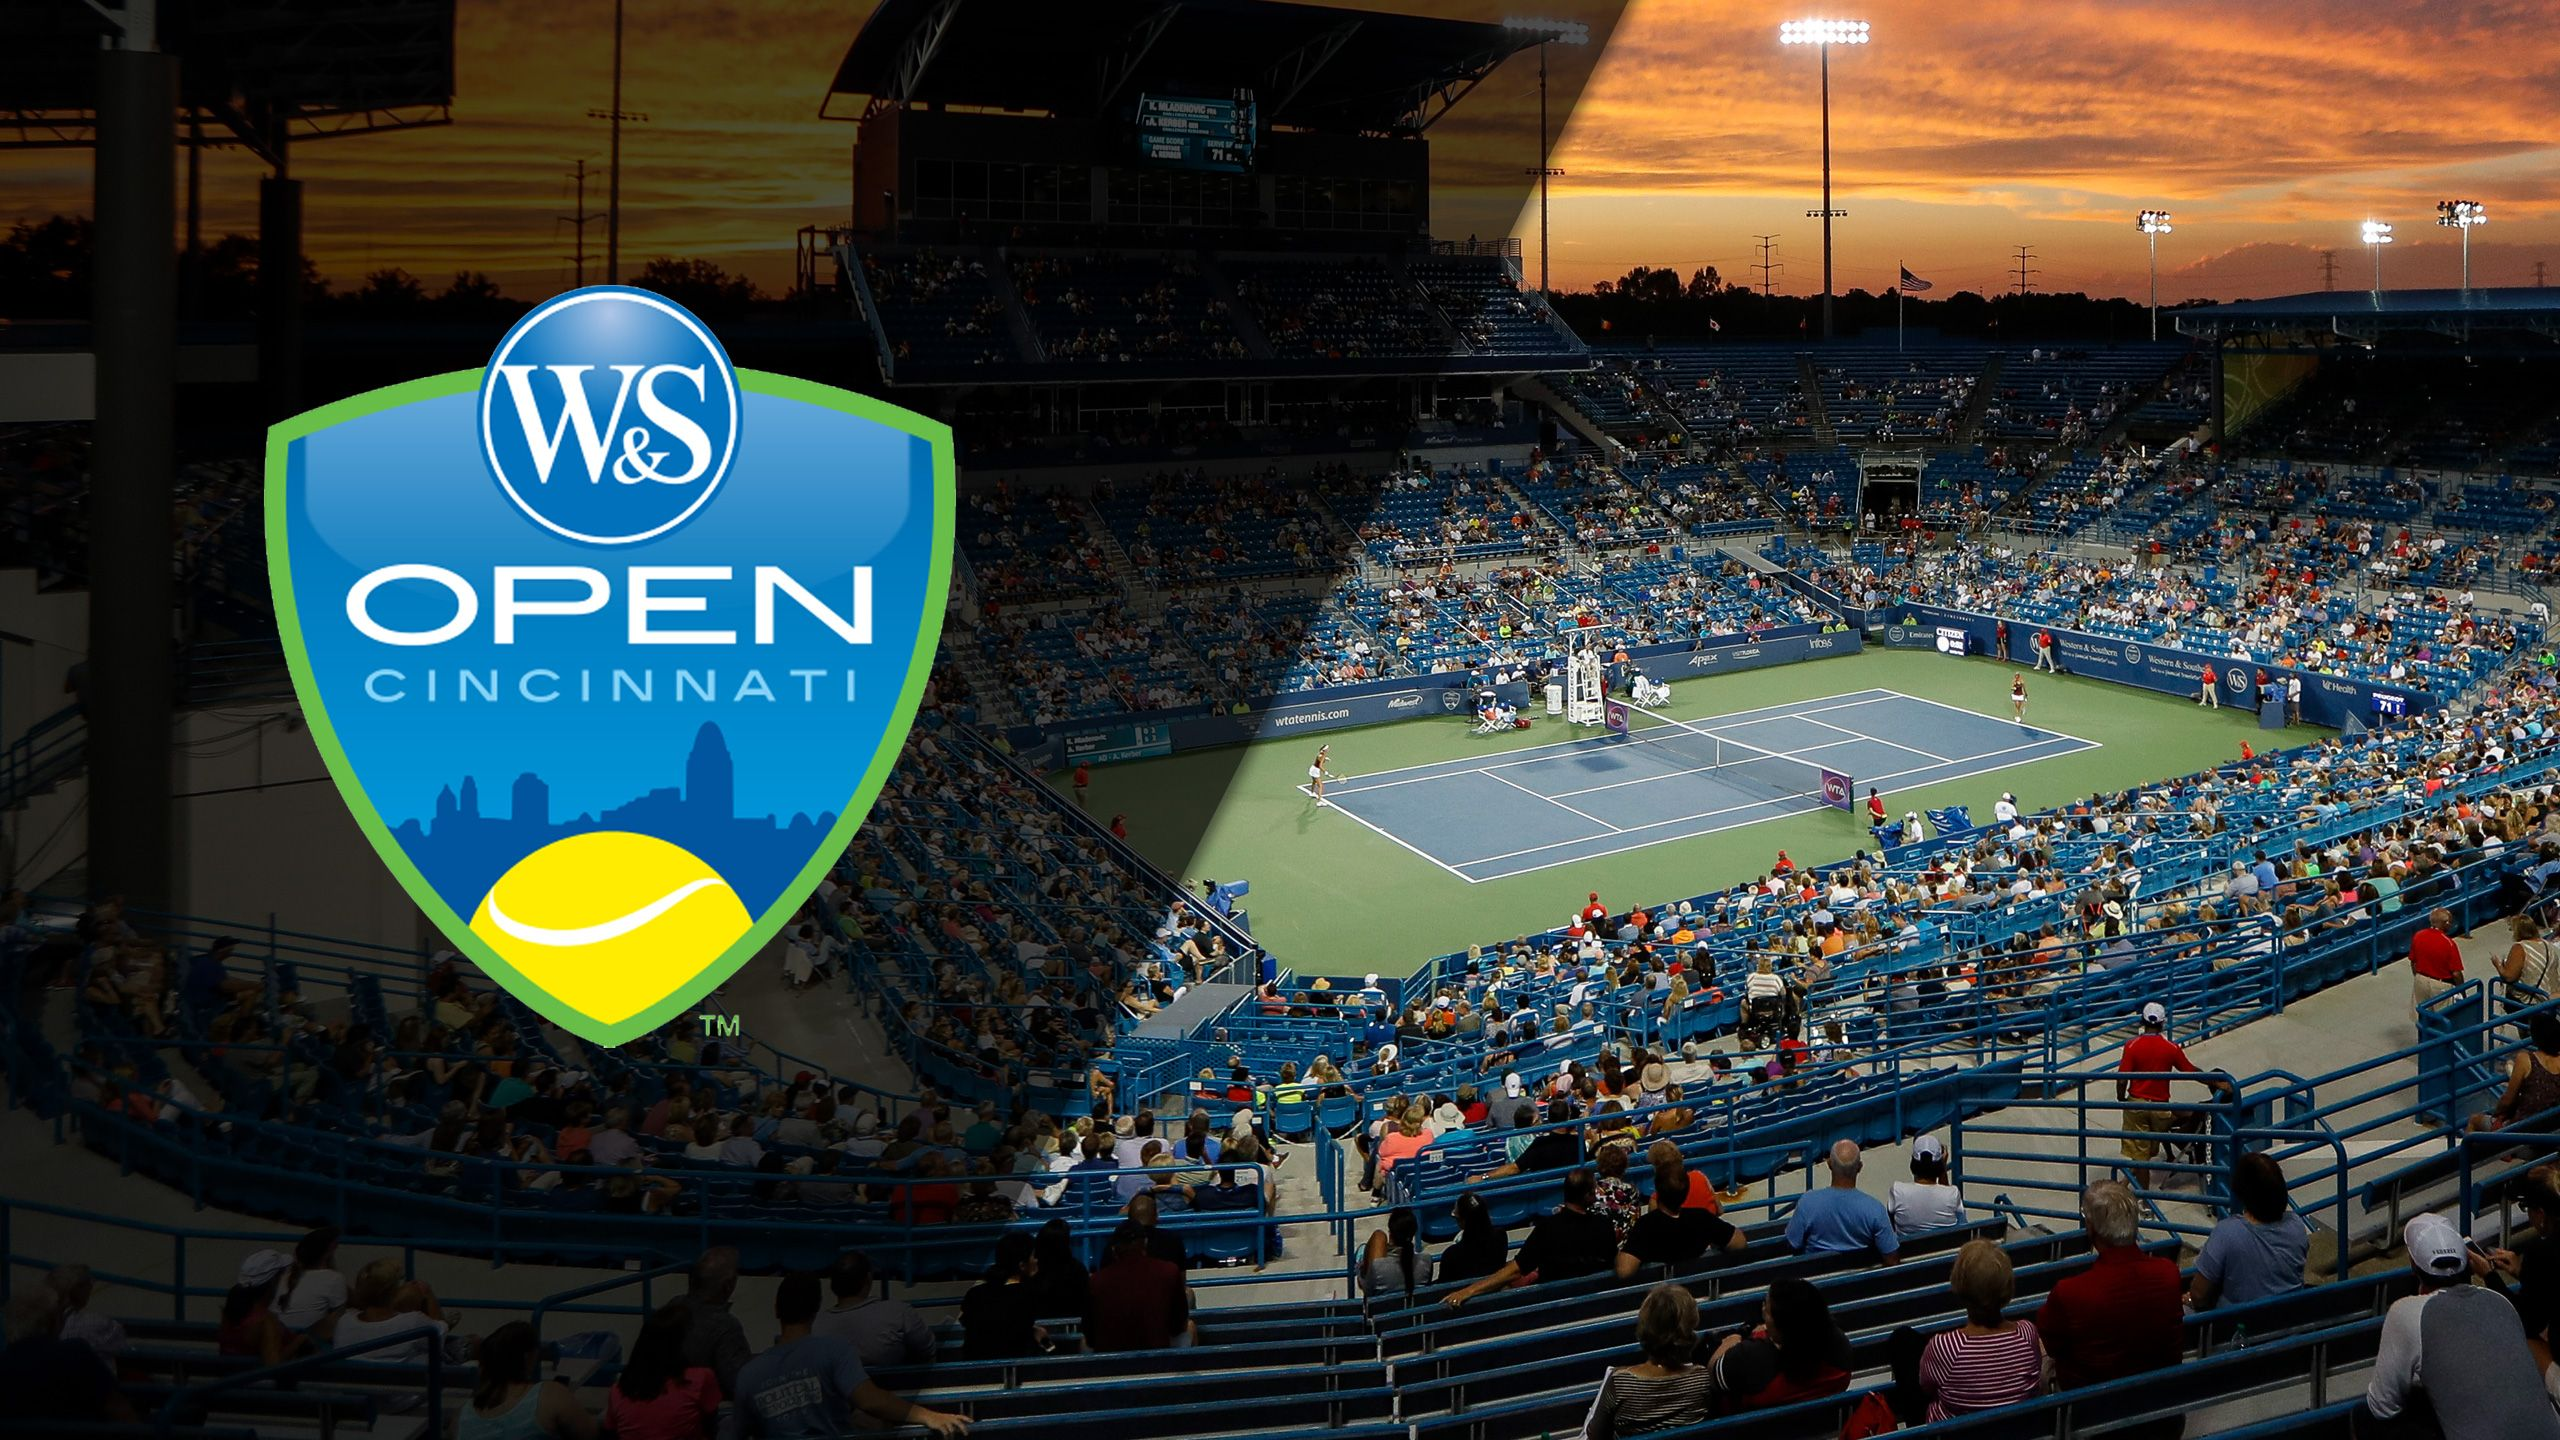 2017 US Open Series - Western & Southern Open (Round of 16 & Quarterfinals)